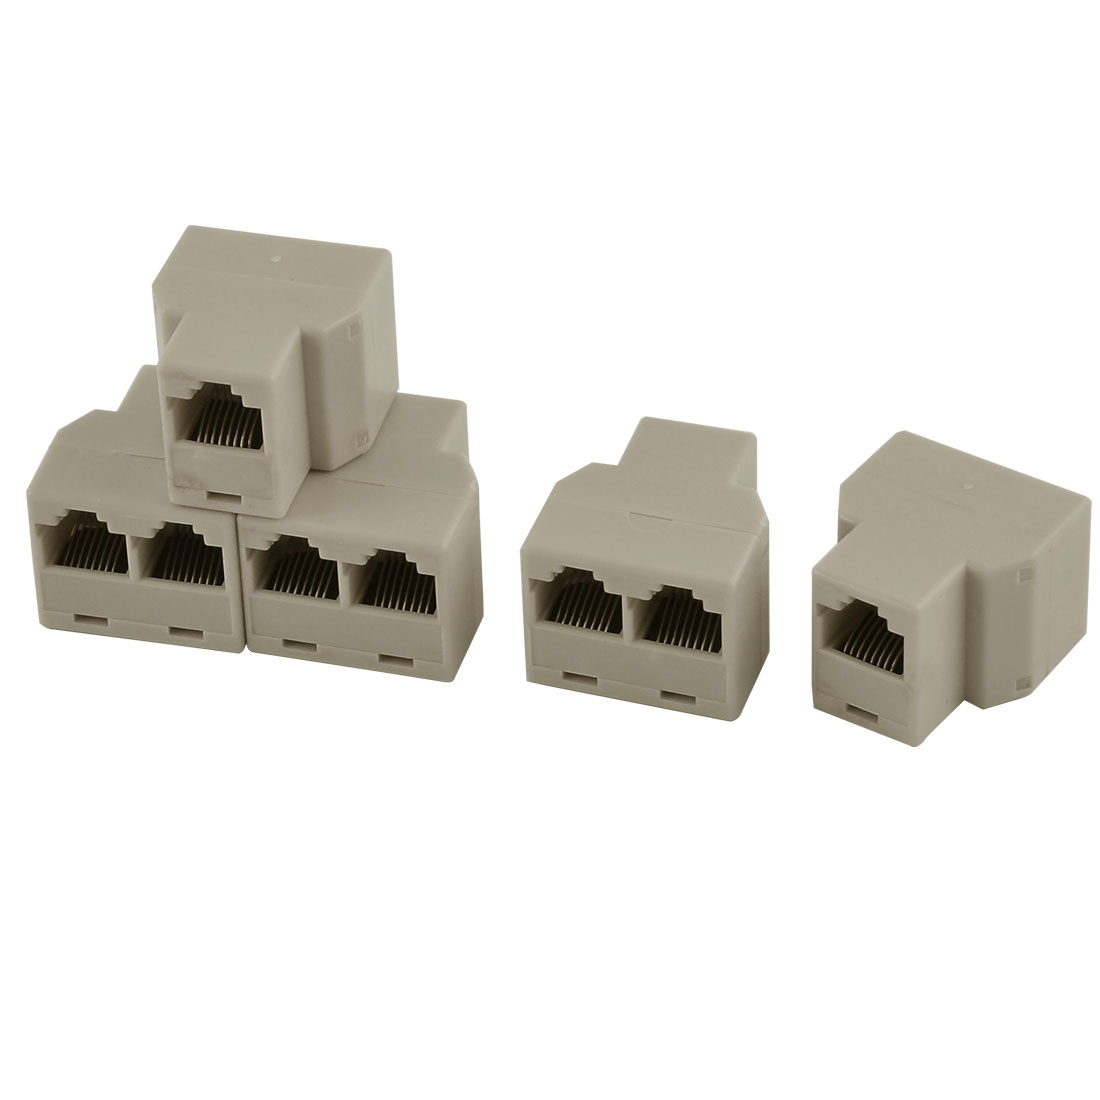 5pcs RJ45 8P8C F-to-F Network Cable Connector Adapter Extender Coupler Beige